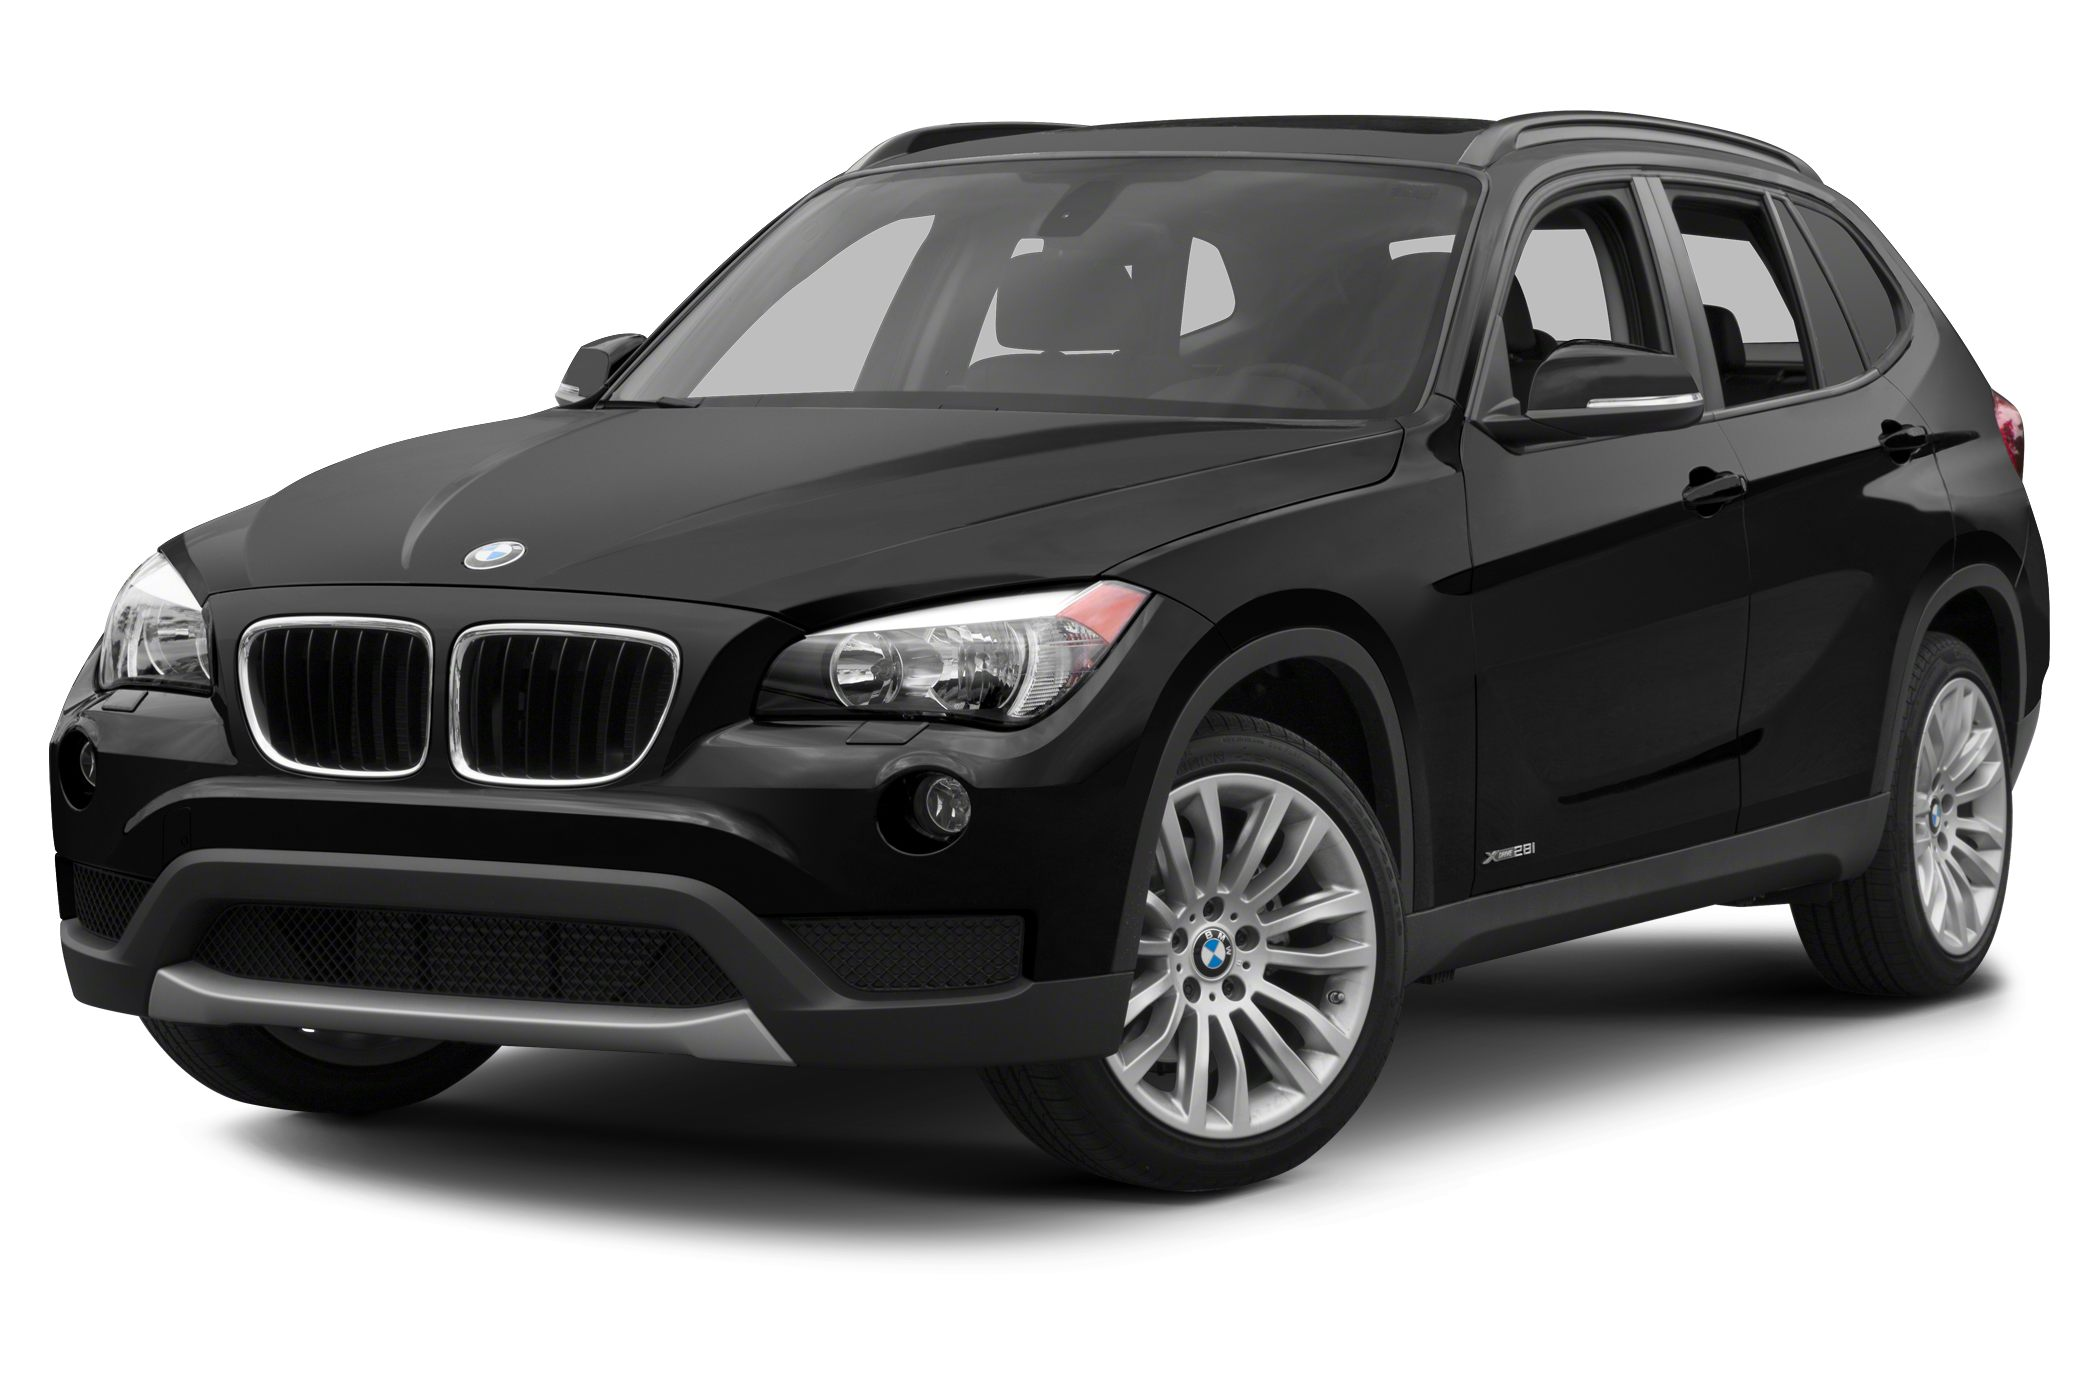 2014 BMW X1 SDrive 28i SUV for sale in Los Angeles for $39,525 with 7 miles.